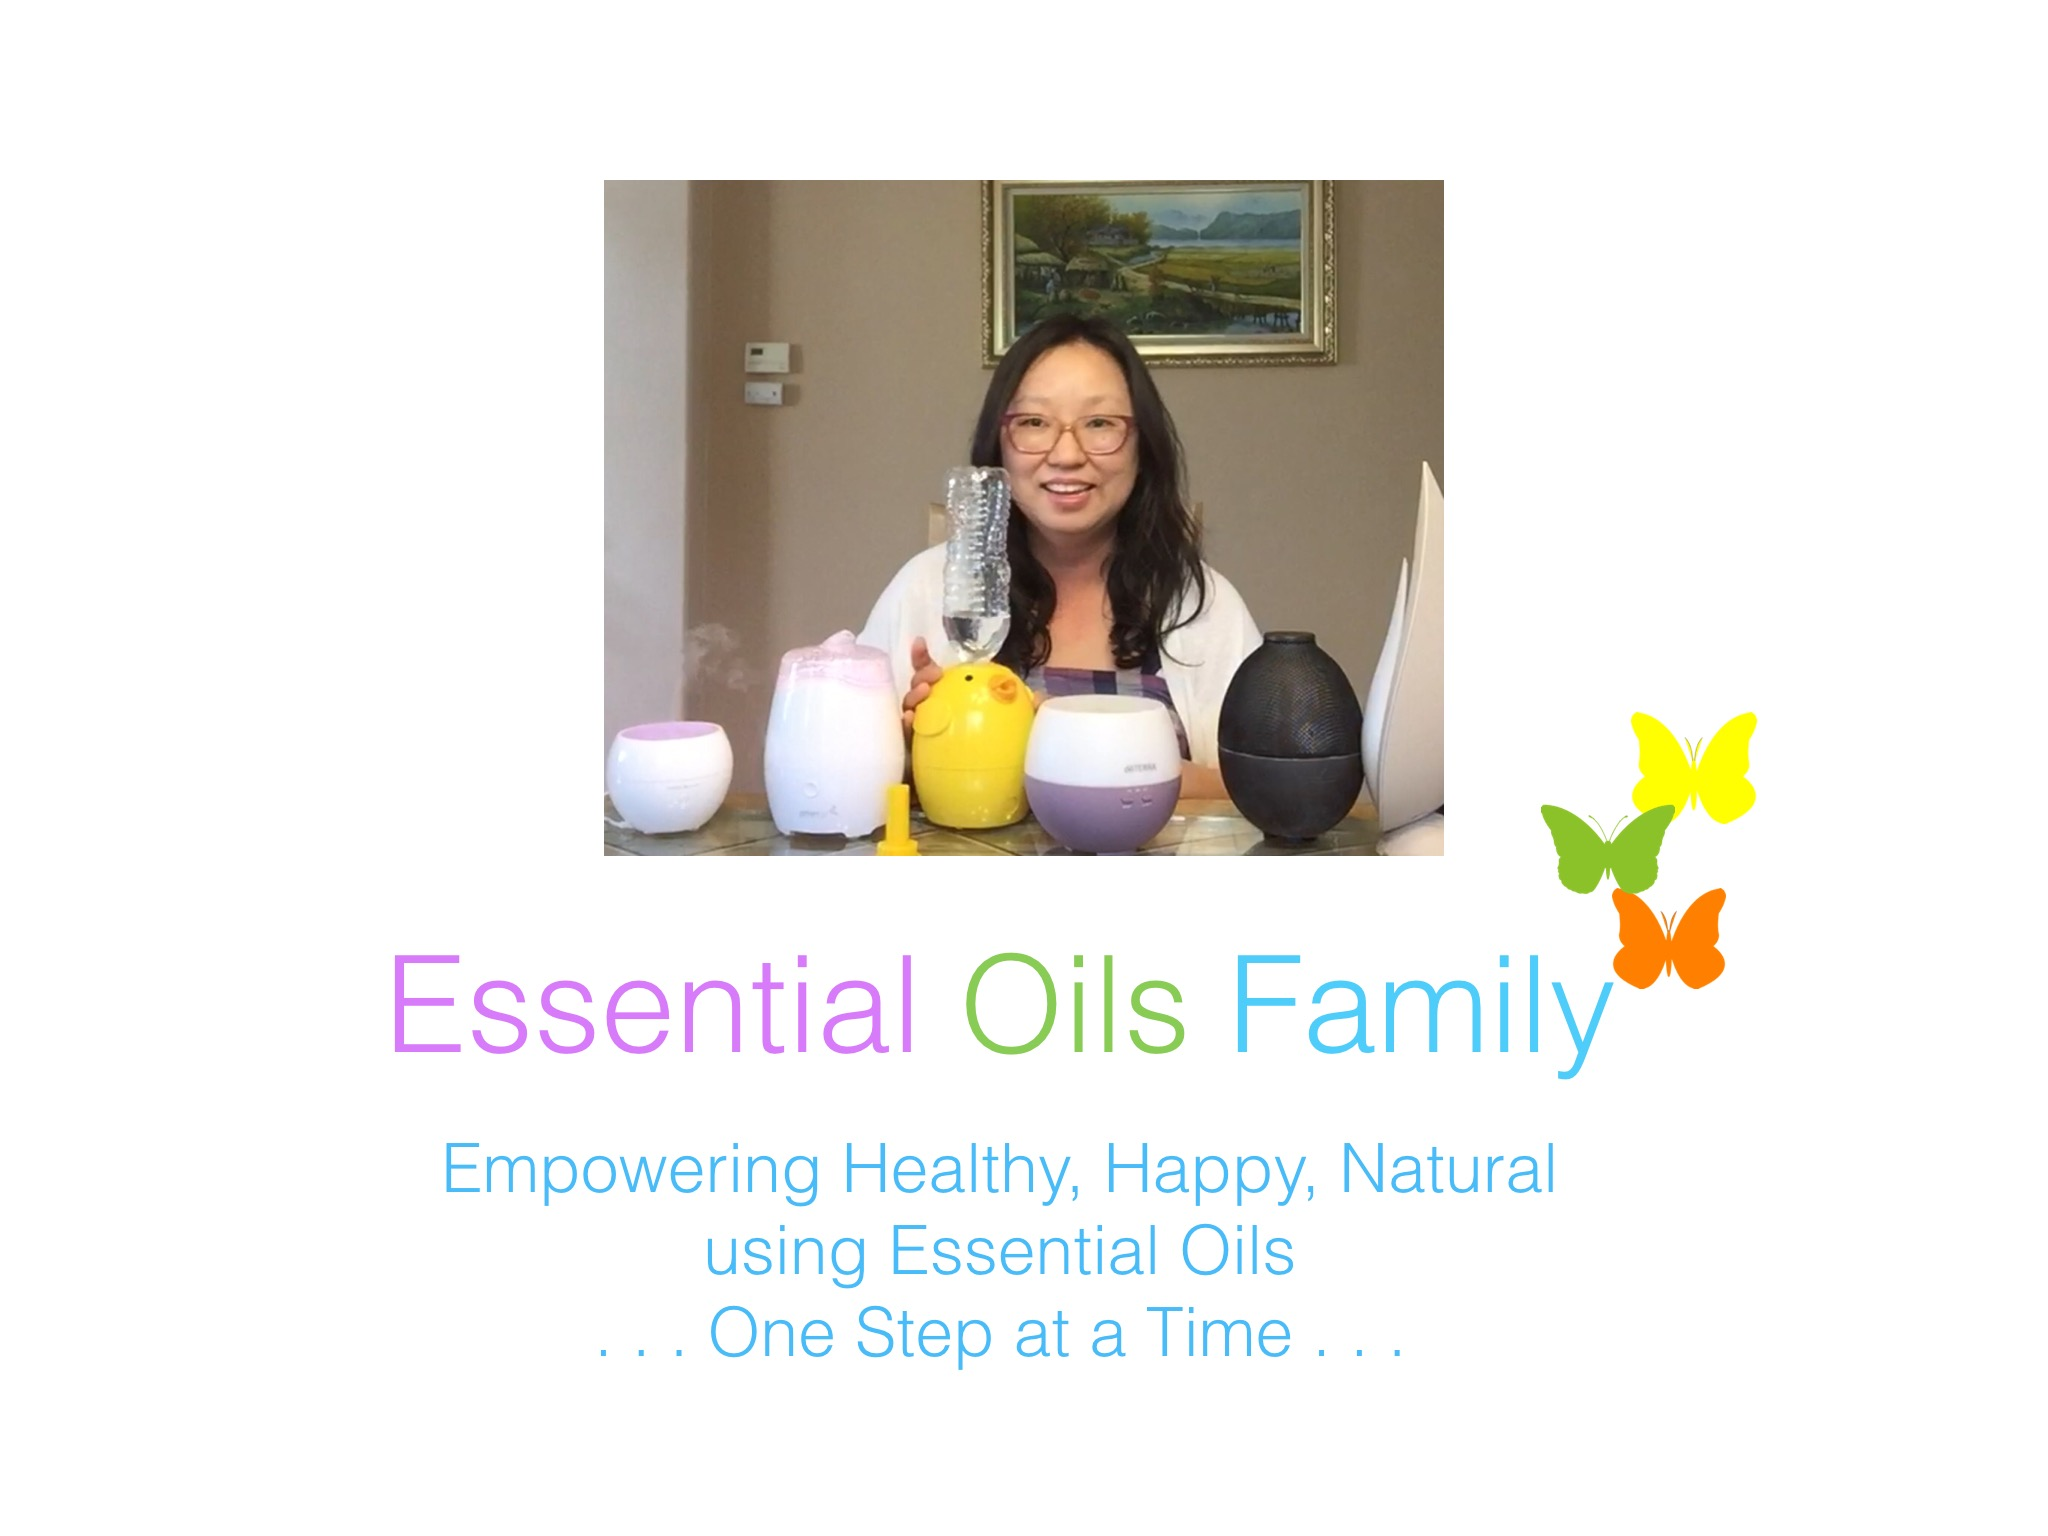 Essential Oils Family